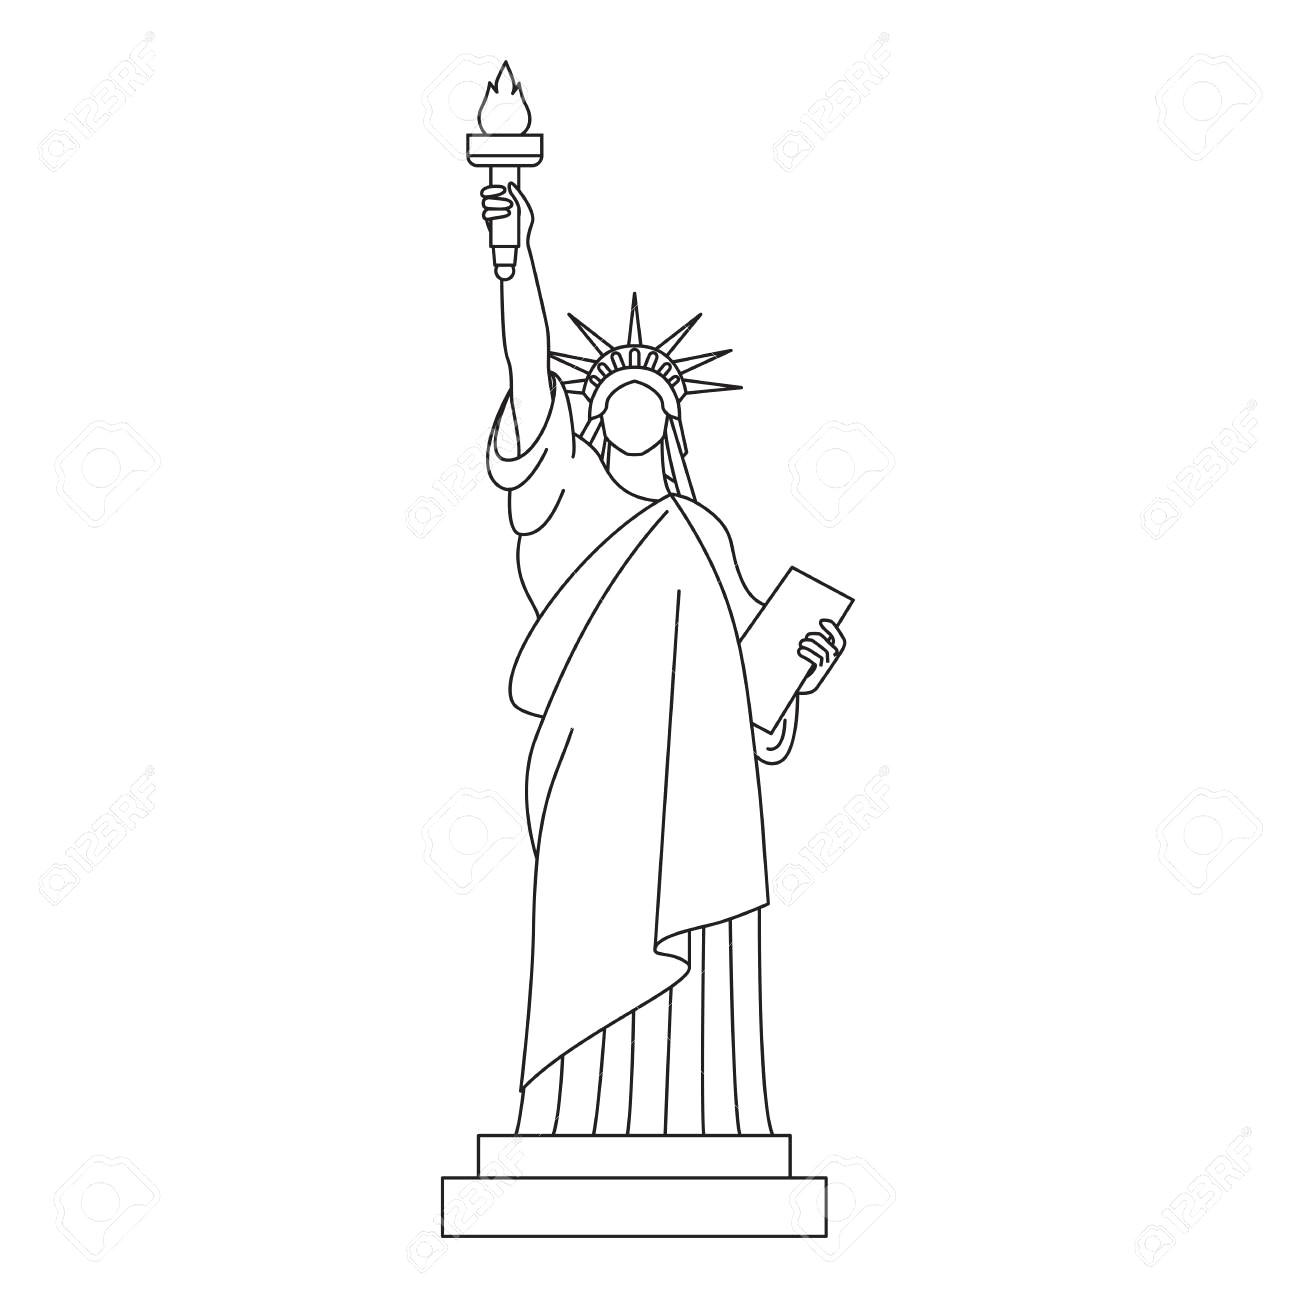 statue of liberty pencil drawing free pencil drawings free download on clipartmag statue pencil drawing liberty of